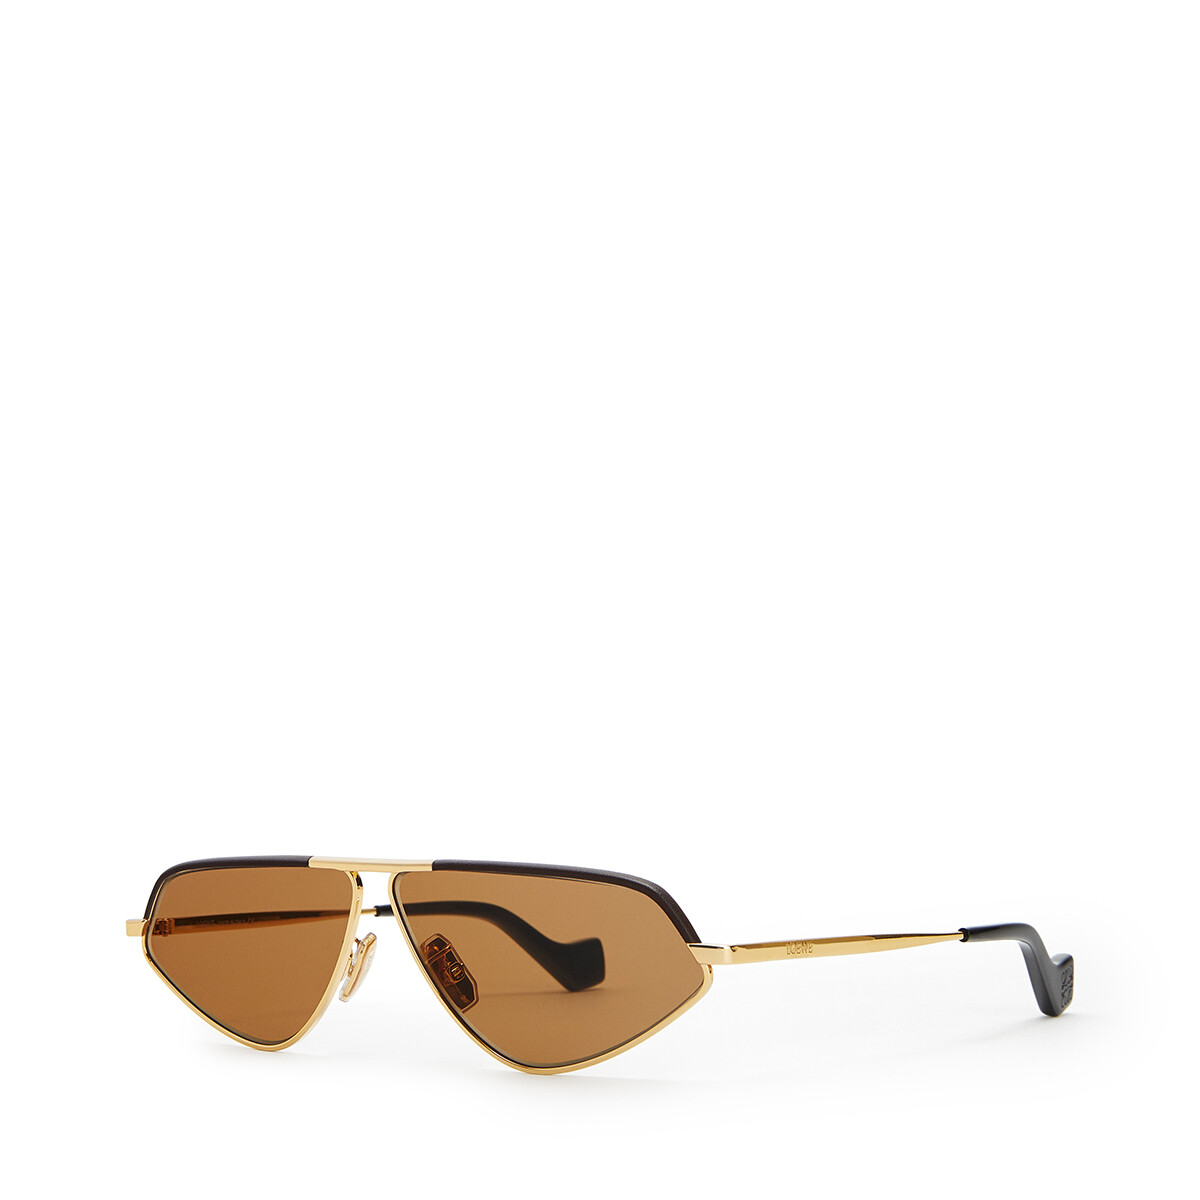 LOEWE Leather Geometric Sunglasses Capuccino front